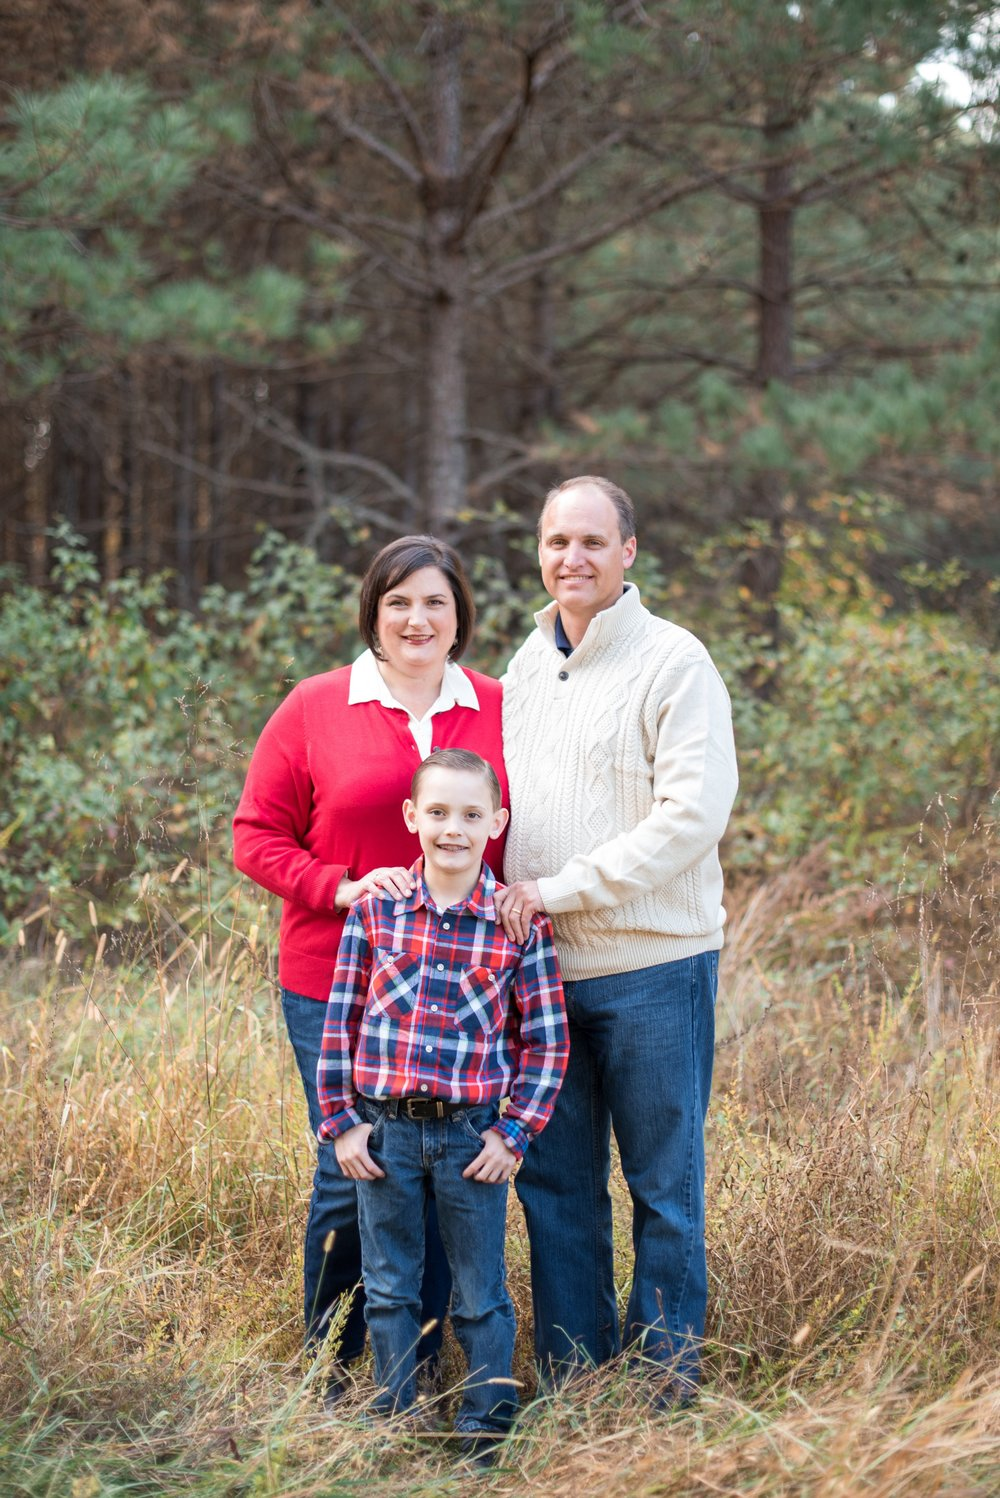 Adam and Jennie Montgomery - Adam and Jennie live in the Macedonia Community of Cherokee County and have one son, Jack, who is 11. They both work in Alpharetta and enjoy spending time together as a family as much as possible. Having been members of First Baptist Church of Alpharetta for over two decades, they have served in many of their ministries. Adam and Jennie both currently serve GracePoint on the Radical Hospitality Team, Adam as a greeter and Jennie as a host.Once they learned of GracePoint Church, they felt called to serve God in a community much closer to our home. They want to live and share the radical hospitality of Jesus with others, and desire that everyone who comes to GracePoint Church feels welcomed, loved, and at home.